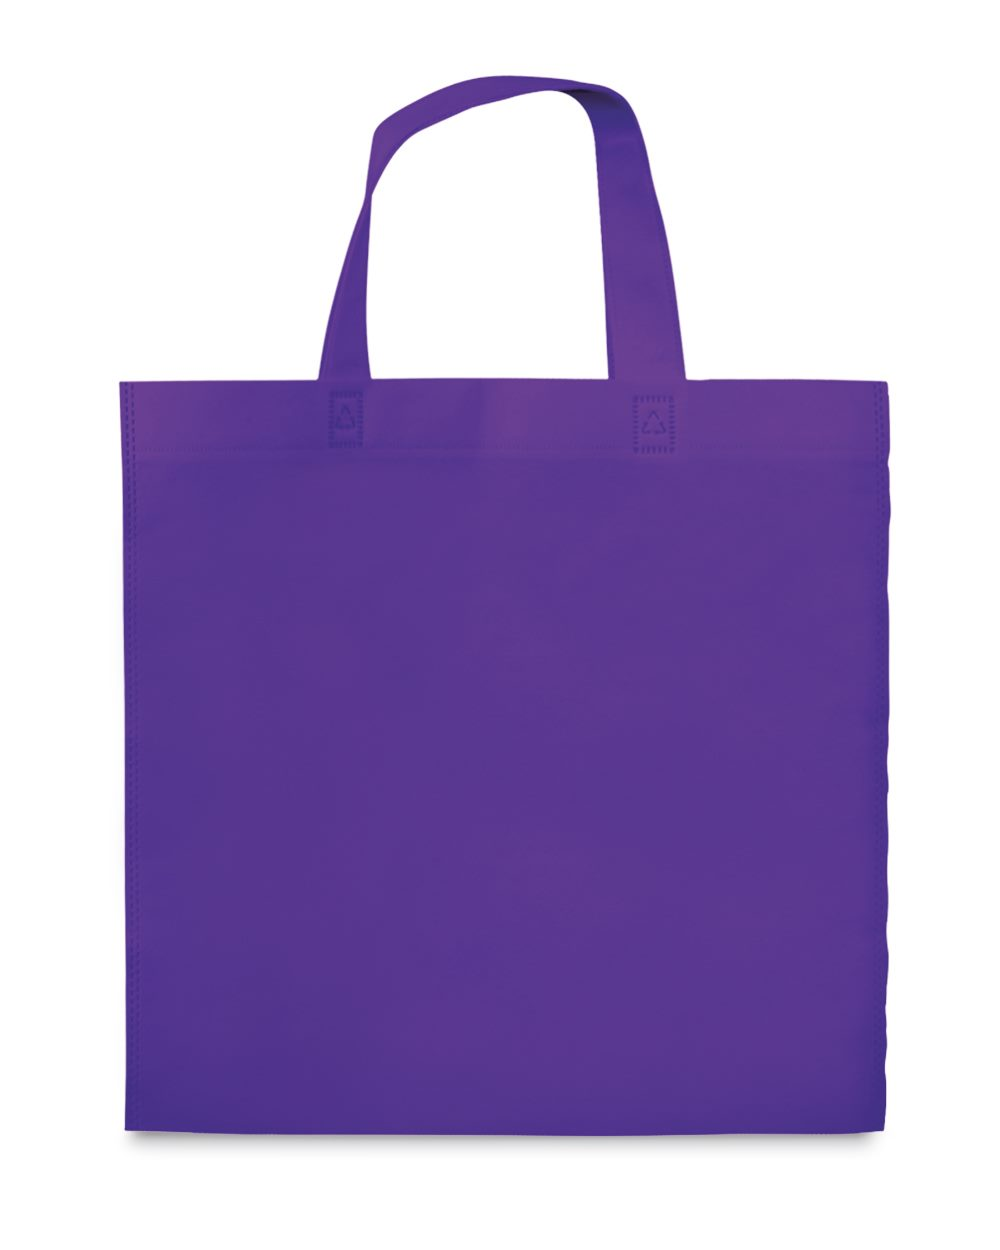 Valubag VB0888 - Heat Sealed Non Woven Shopping Bag